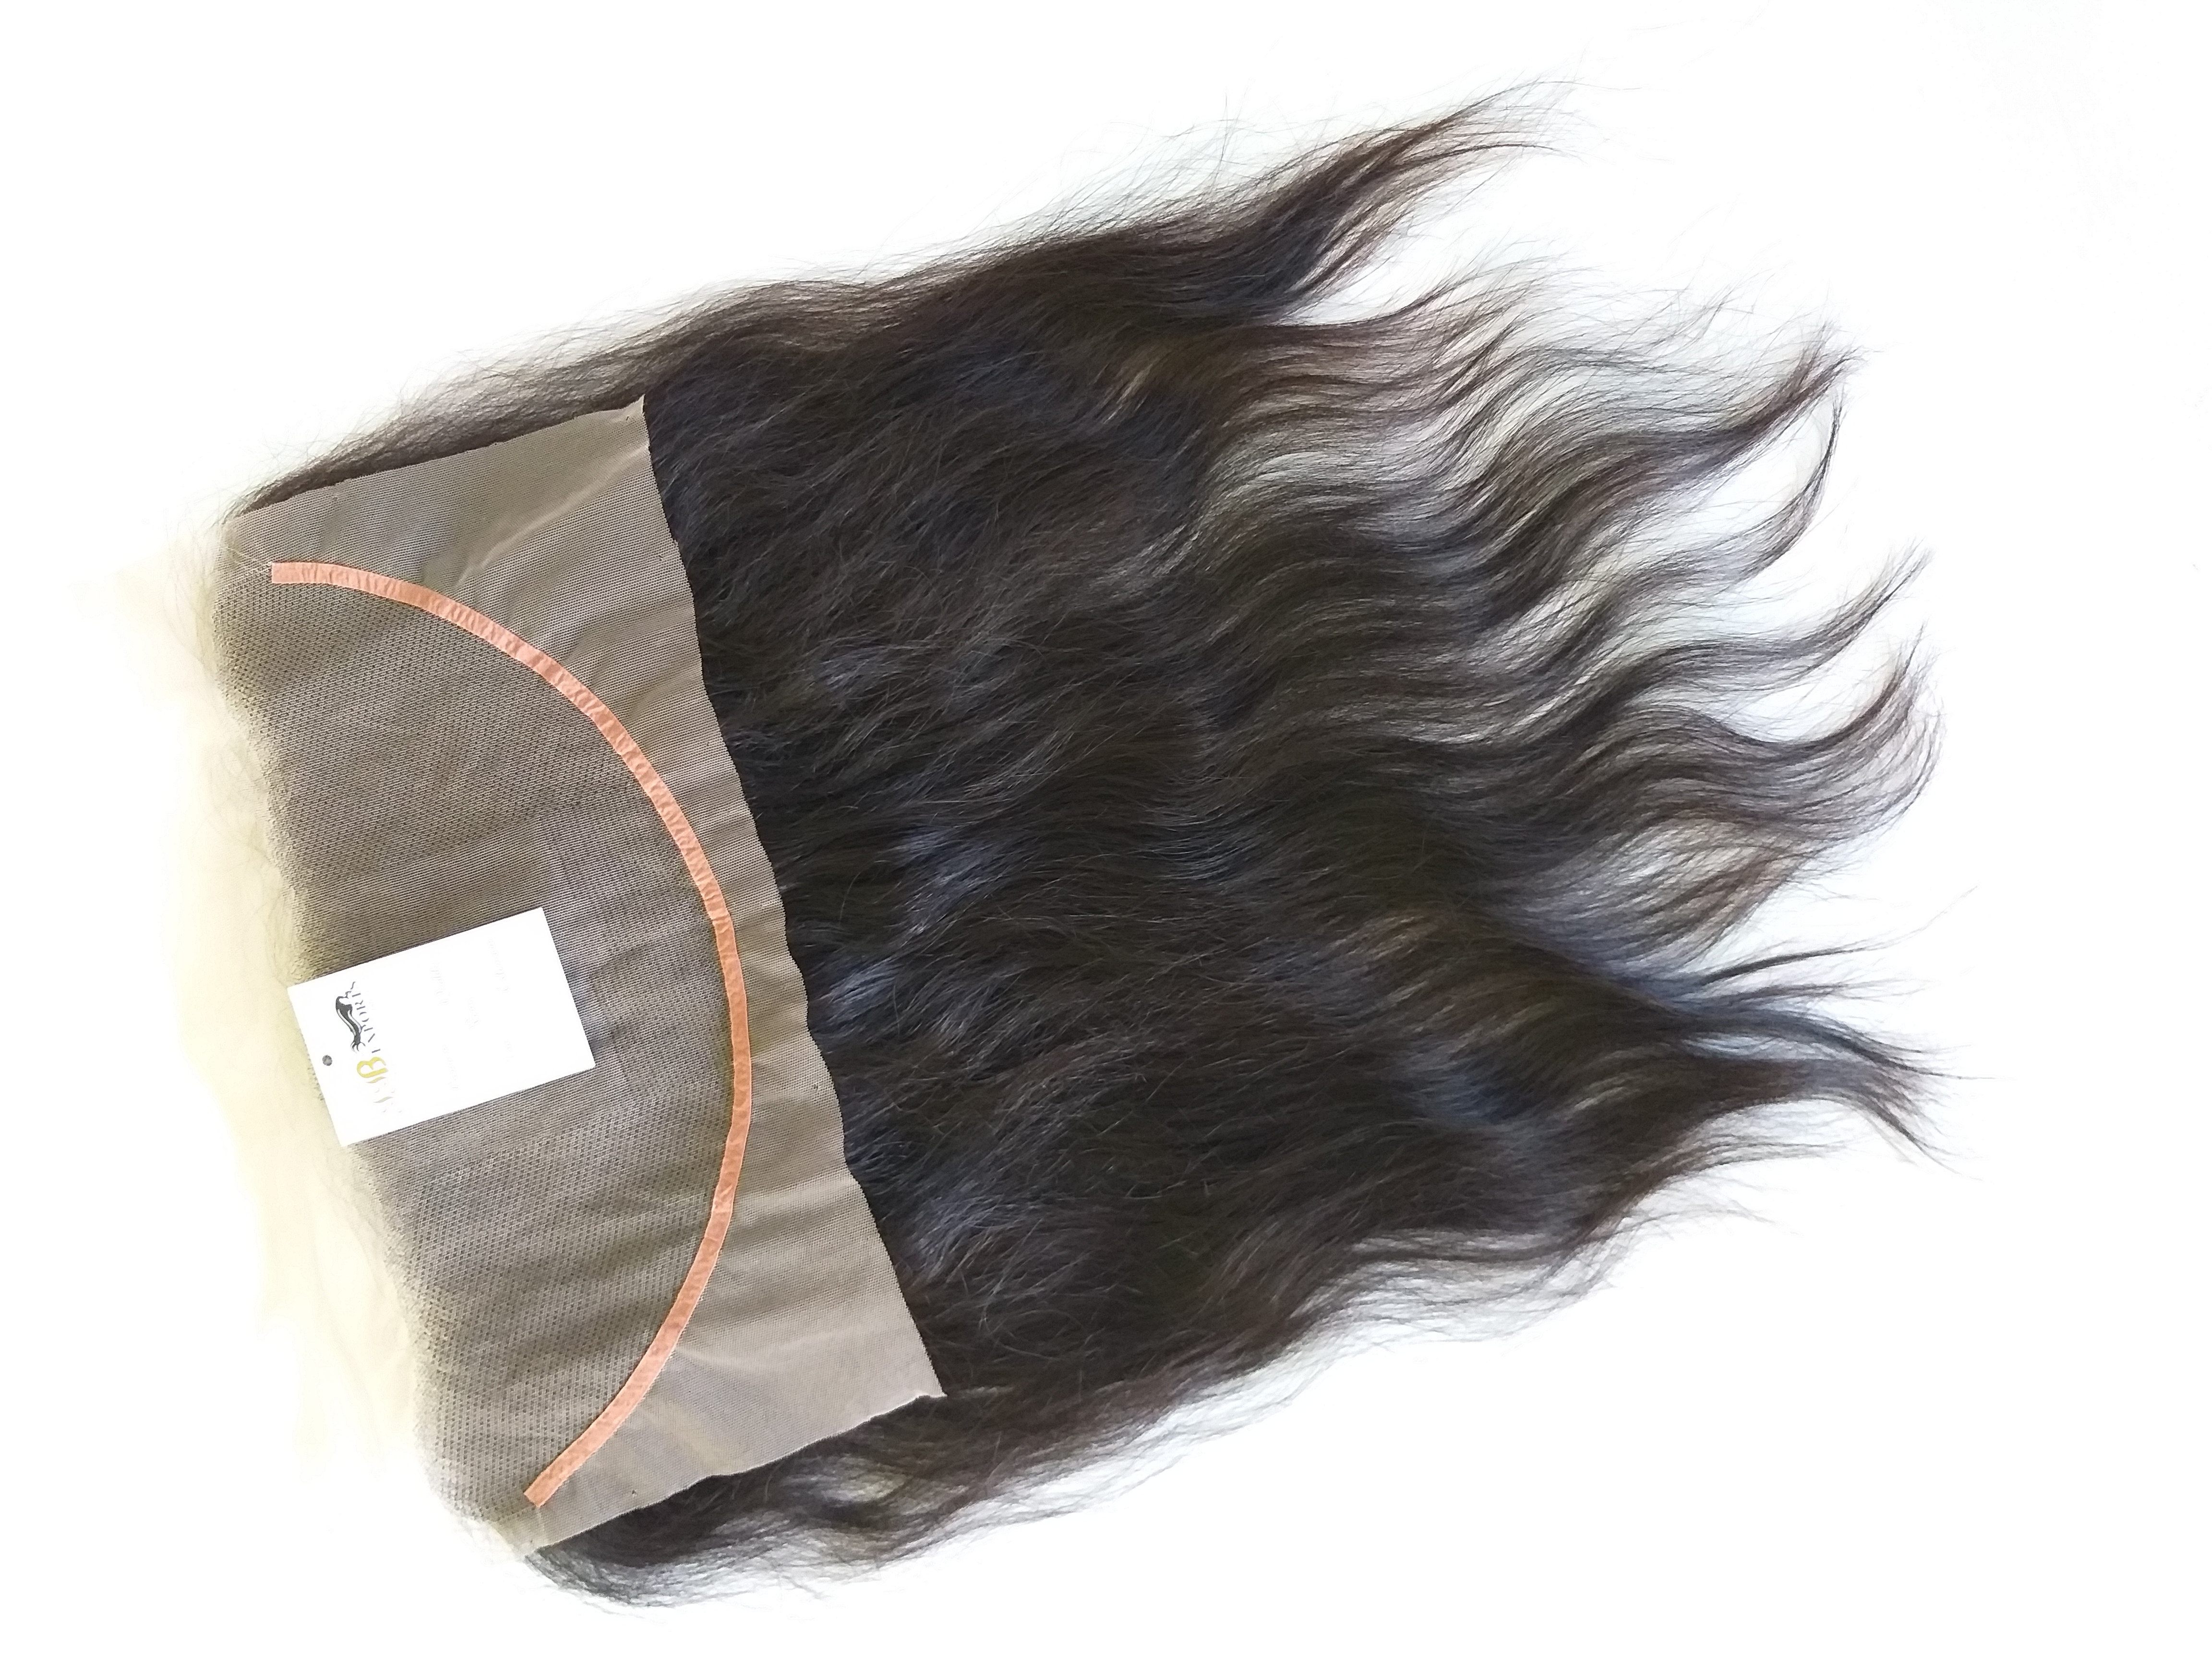 Swiss Hd 13x4 13x 5 Lace Frontal/closure/wig,transparent Hd Lace Closure Frontal,wyholesale Price Remy Virgin Hair Bundle